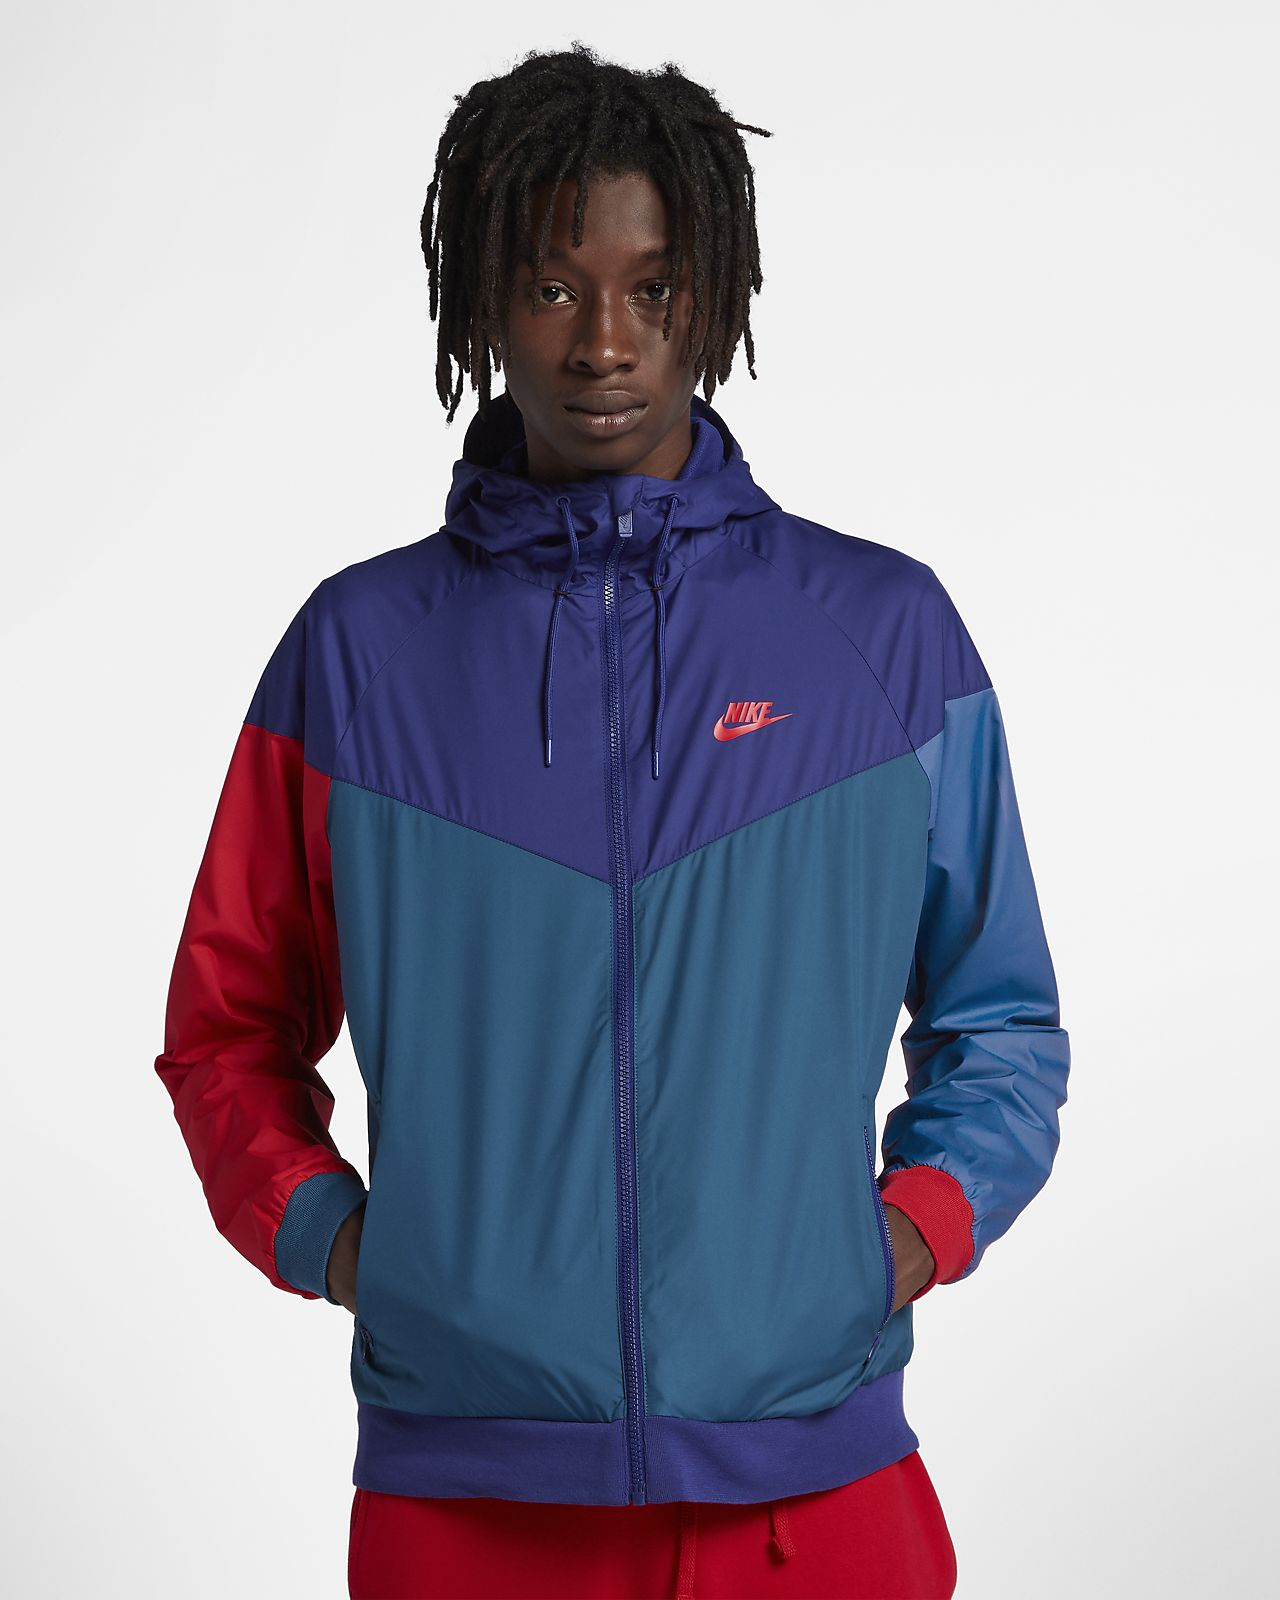 bb1eb04a96 Low Resolution Nike Sportswear Windrunner Men s Jacket Nike Sportswear  Windrunner Men s Jacket